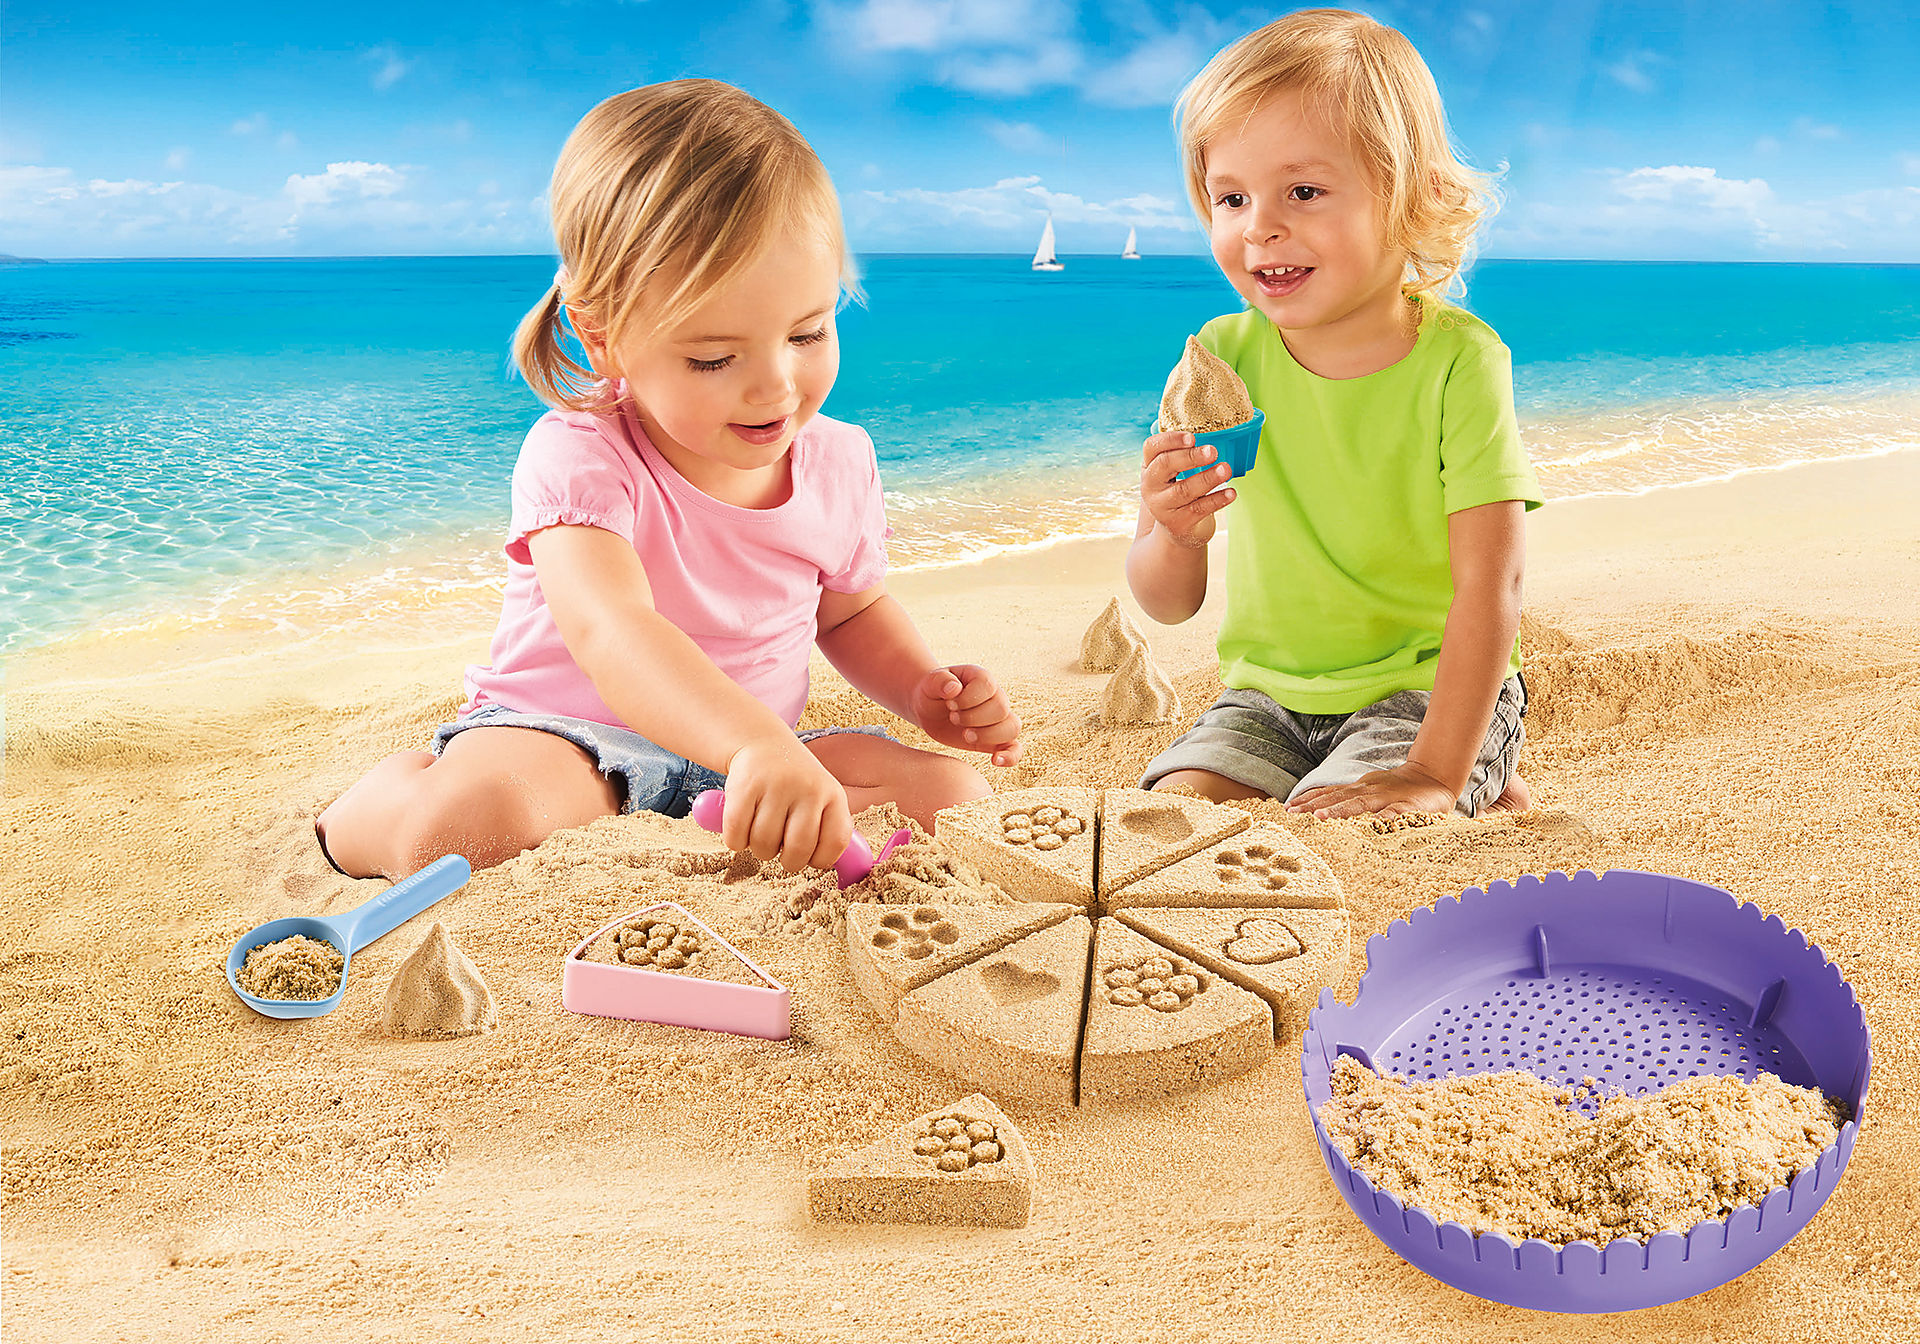 70339 Bakery Sand Bucket zoom image8